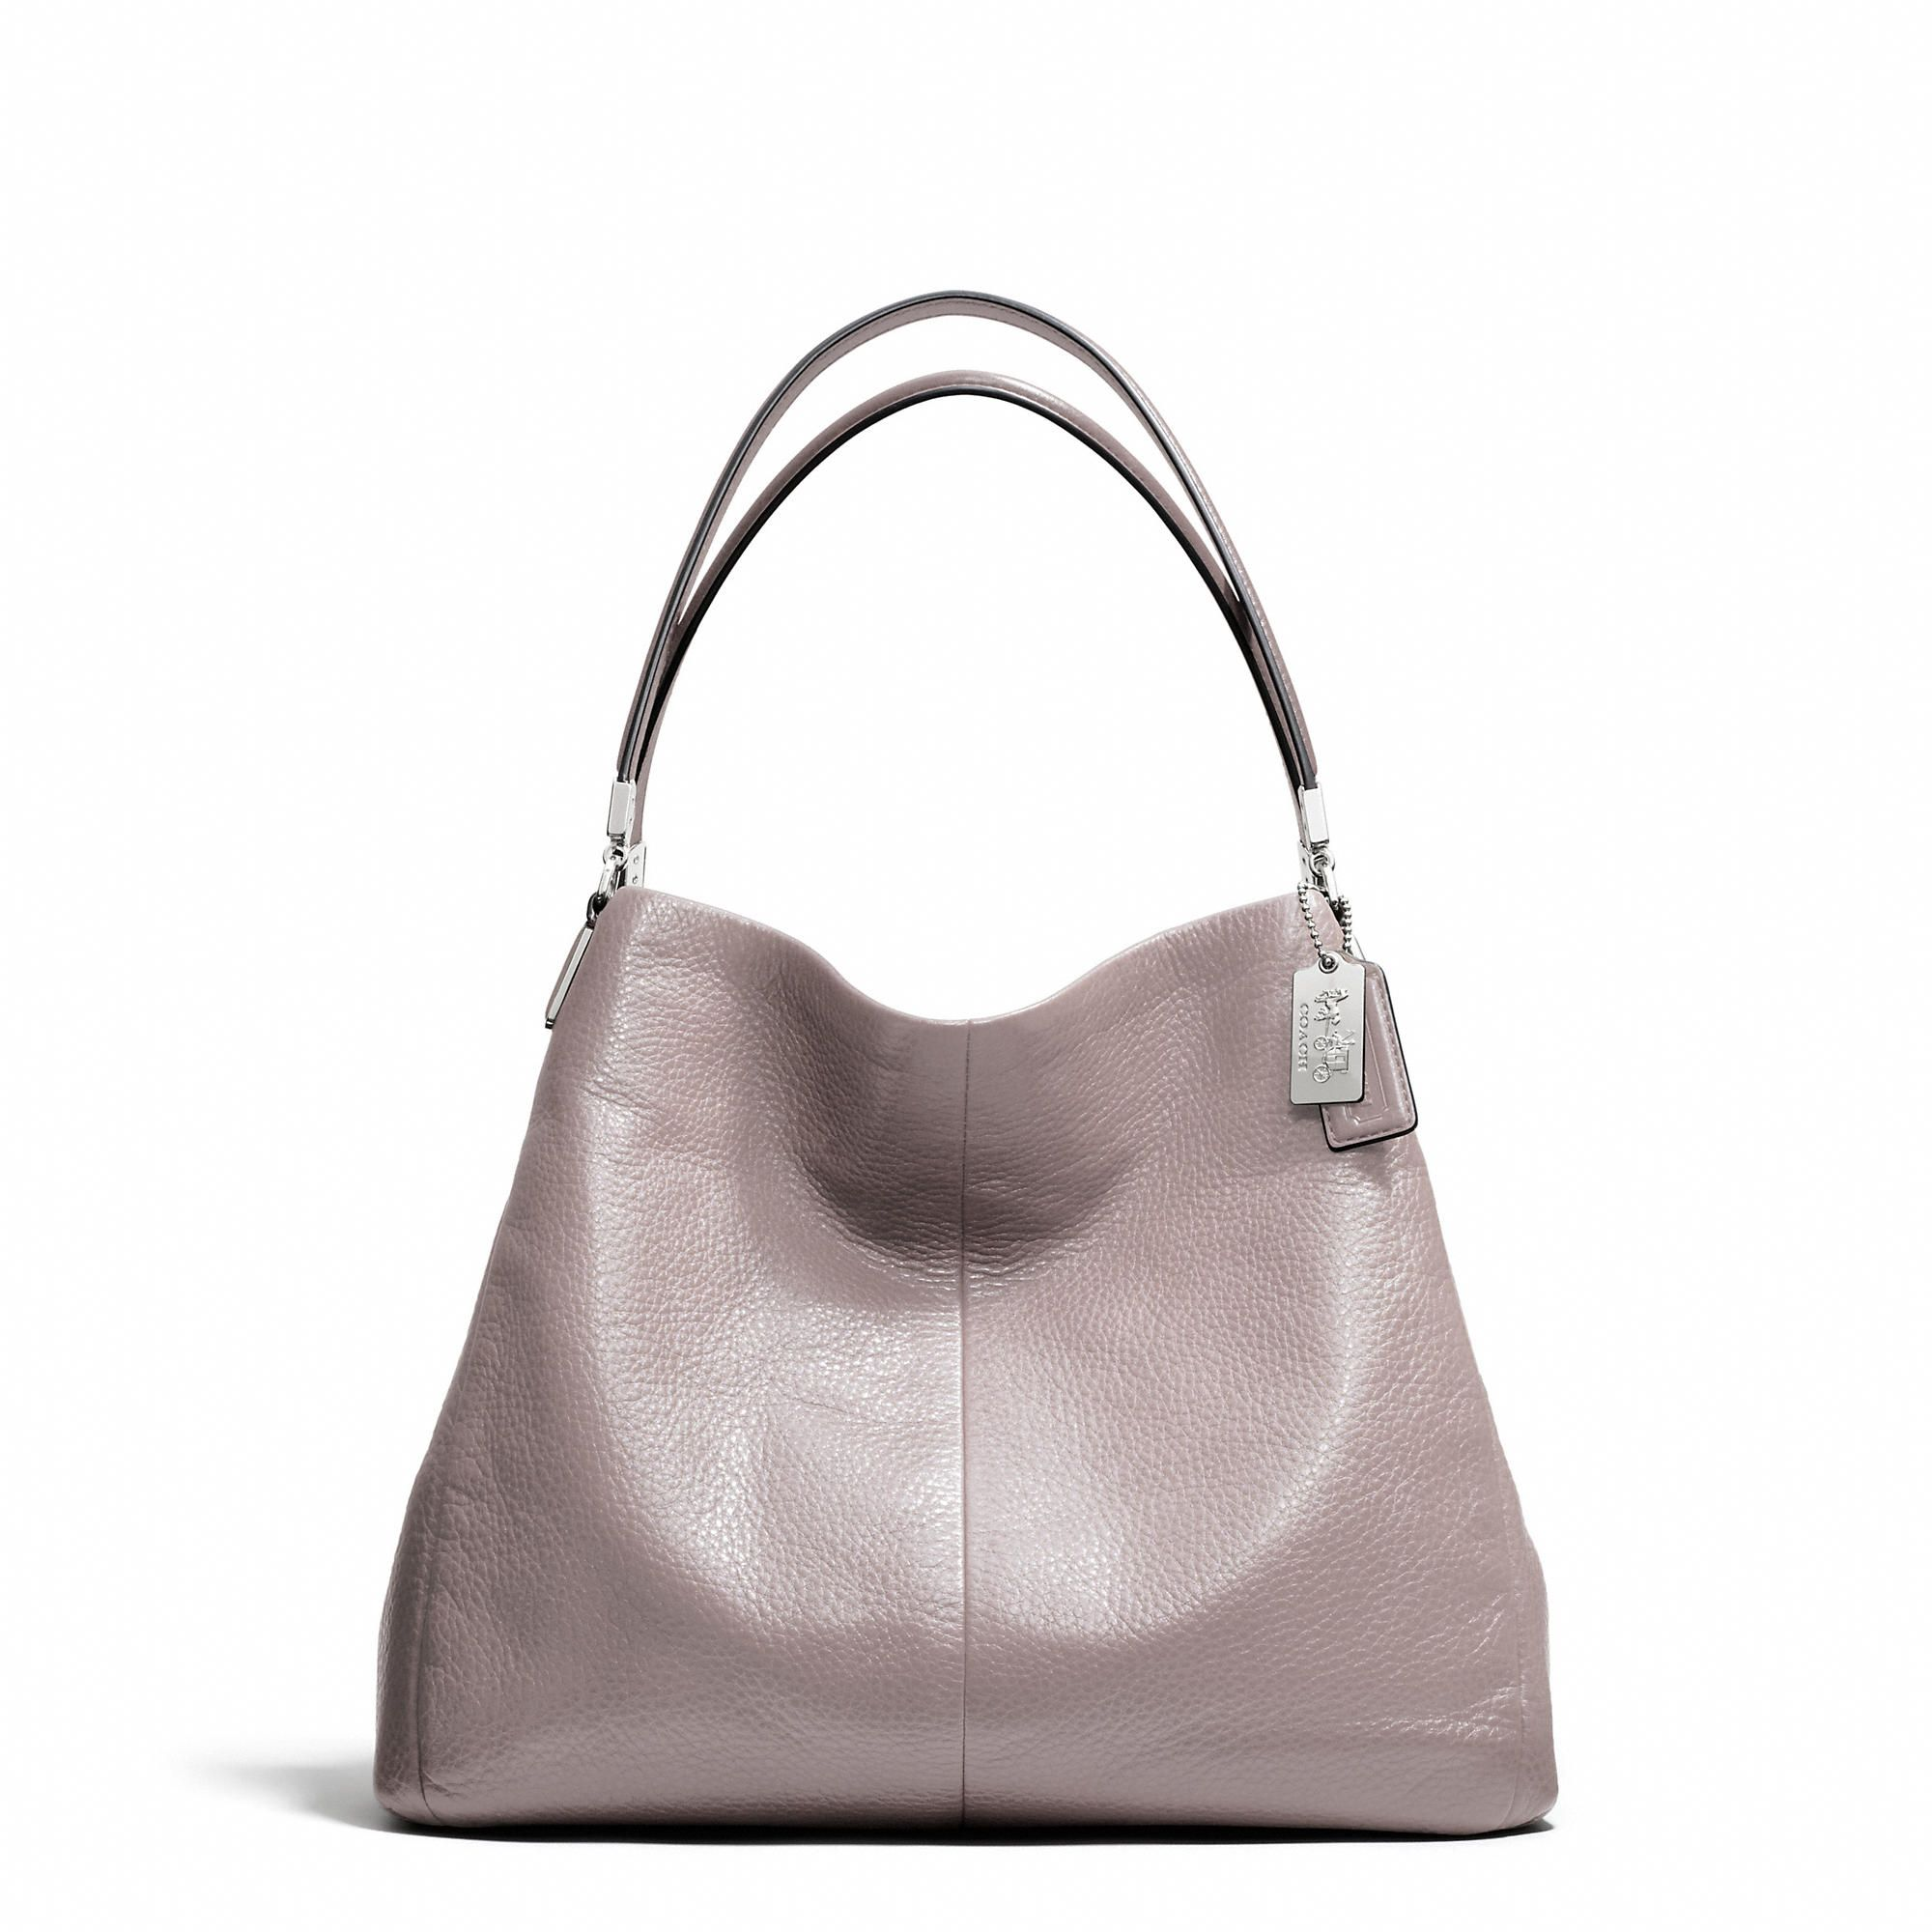 a04cd1bf37174 coupon code for madison sabrina coach shoulder bag 7079a a0a0f; reduced  coach madison small phoebe shoulder bag in leather c8f01 4b062